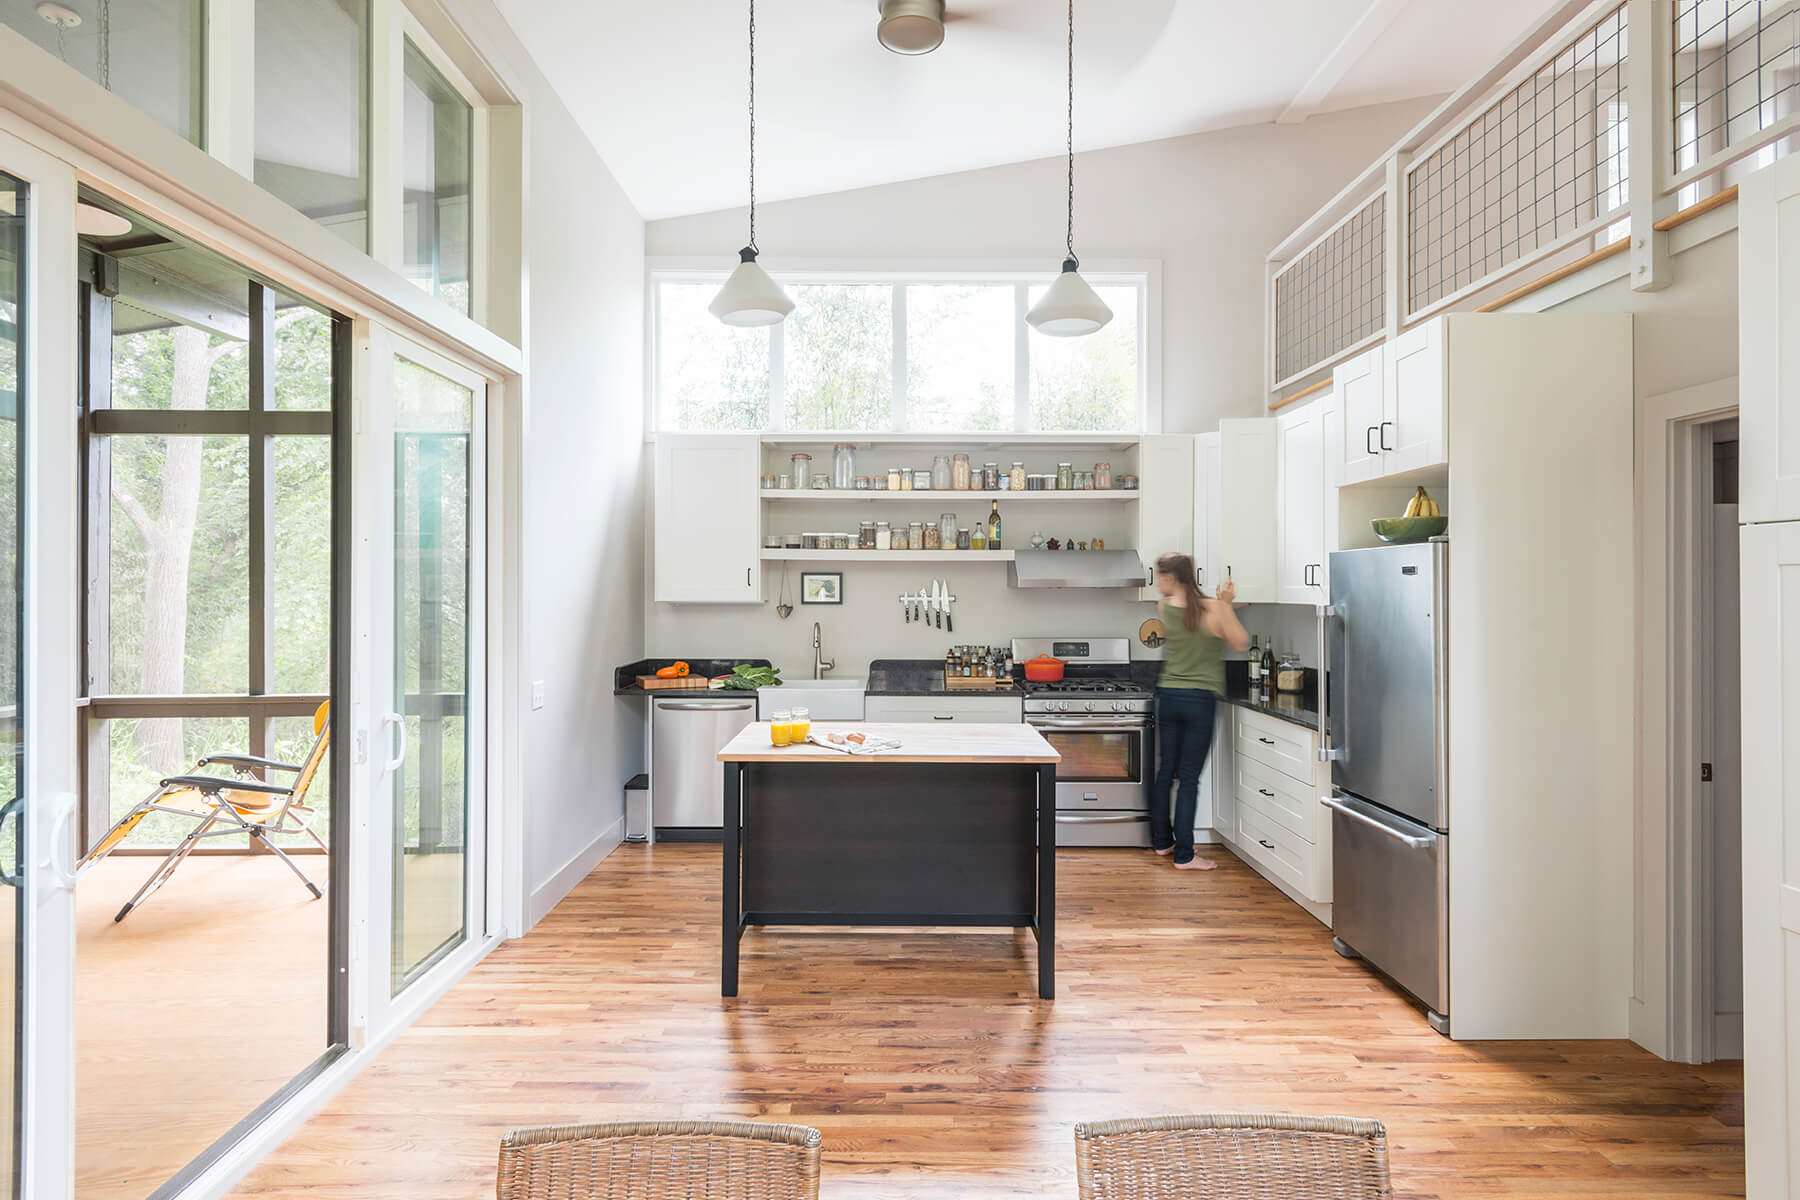 West Asheville Small House Kitchen